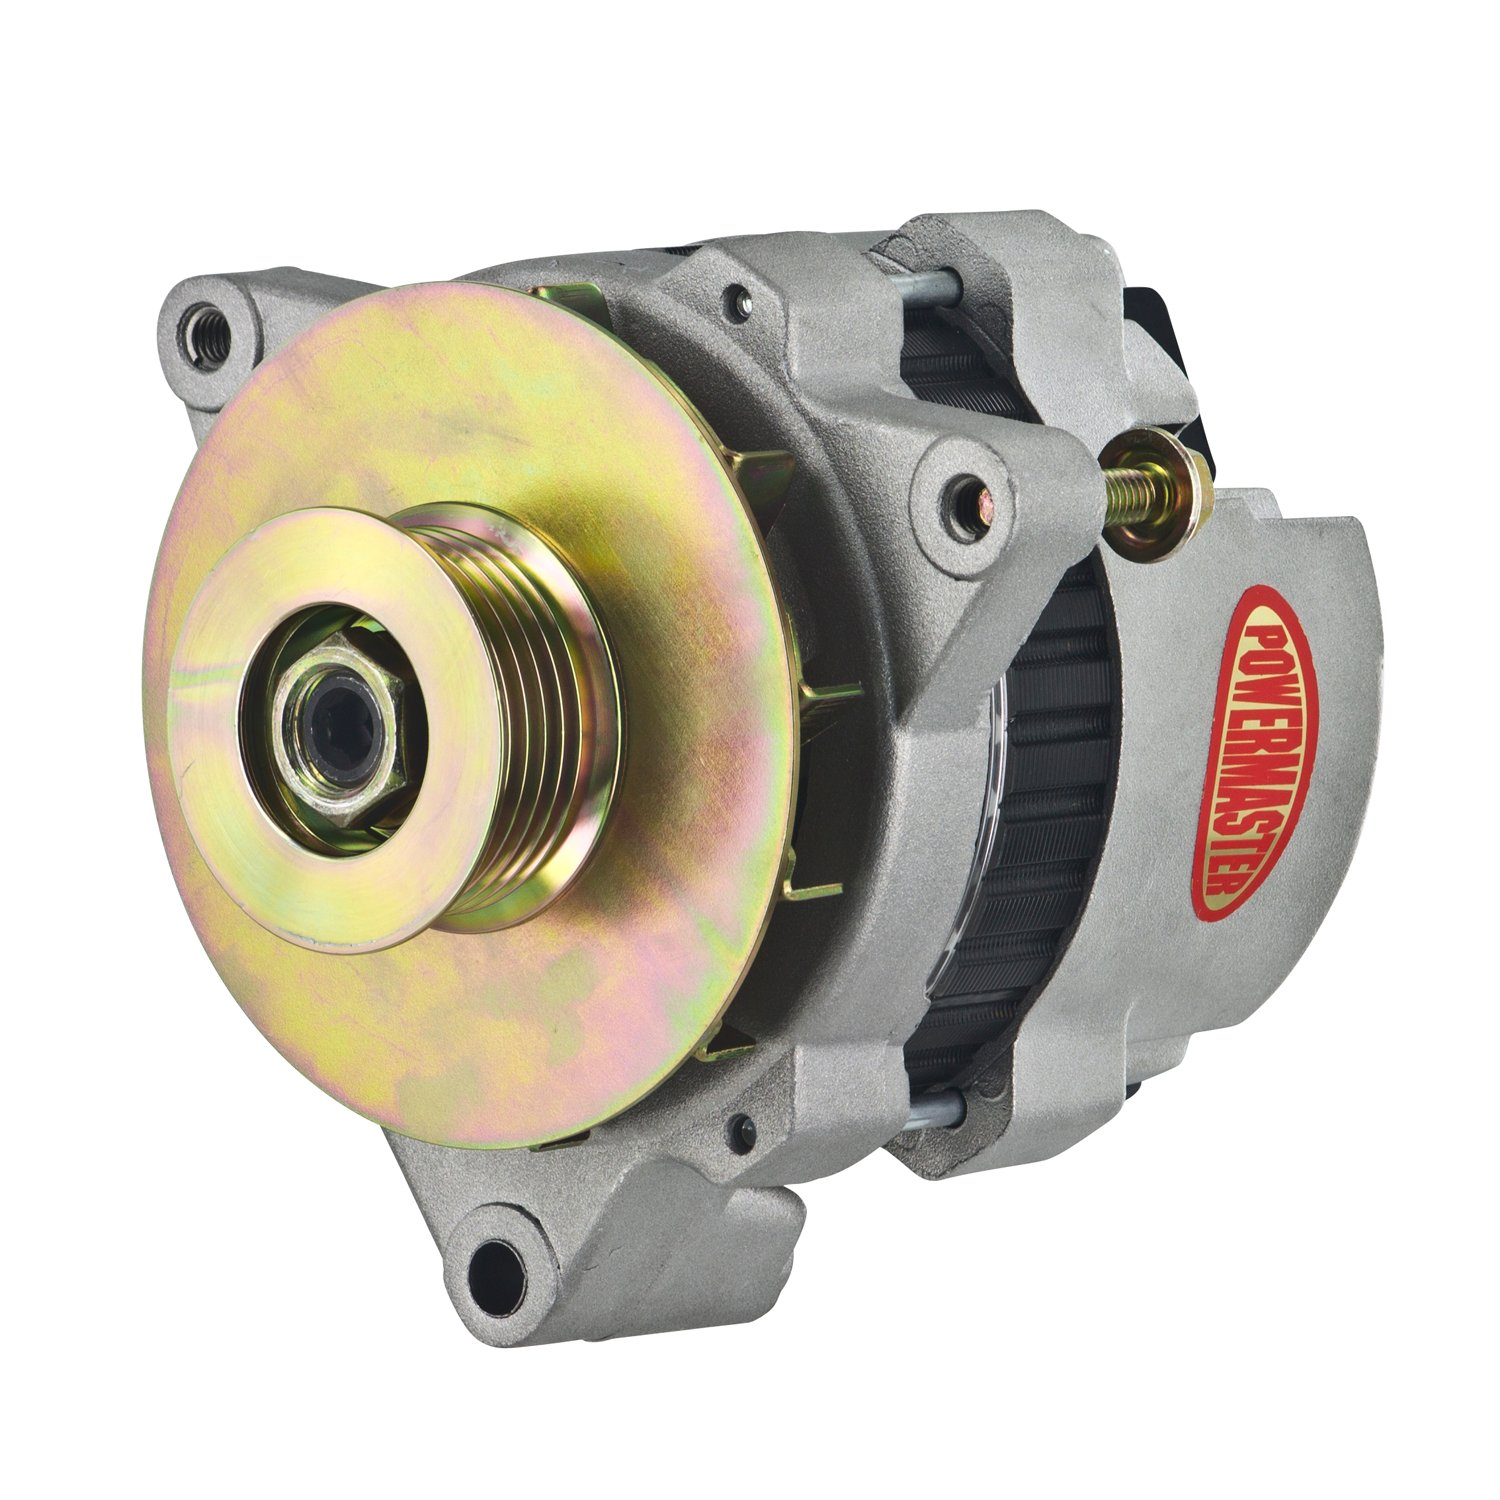 Powermaster 7472-104 - GM 5x5 Compact Race Alternators